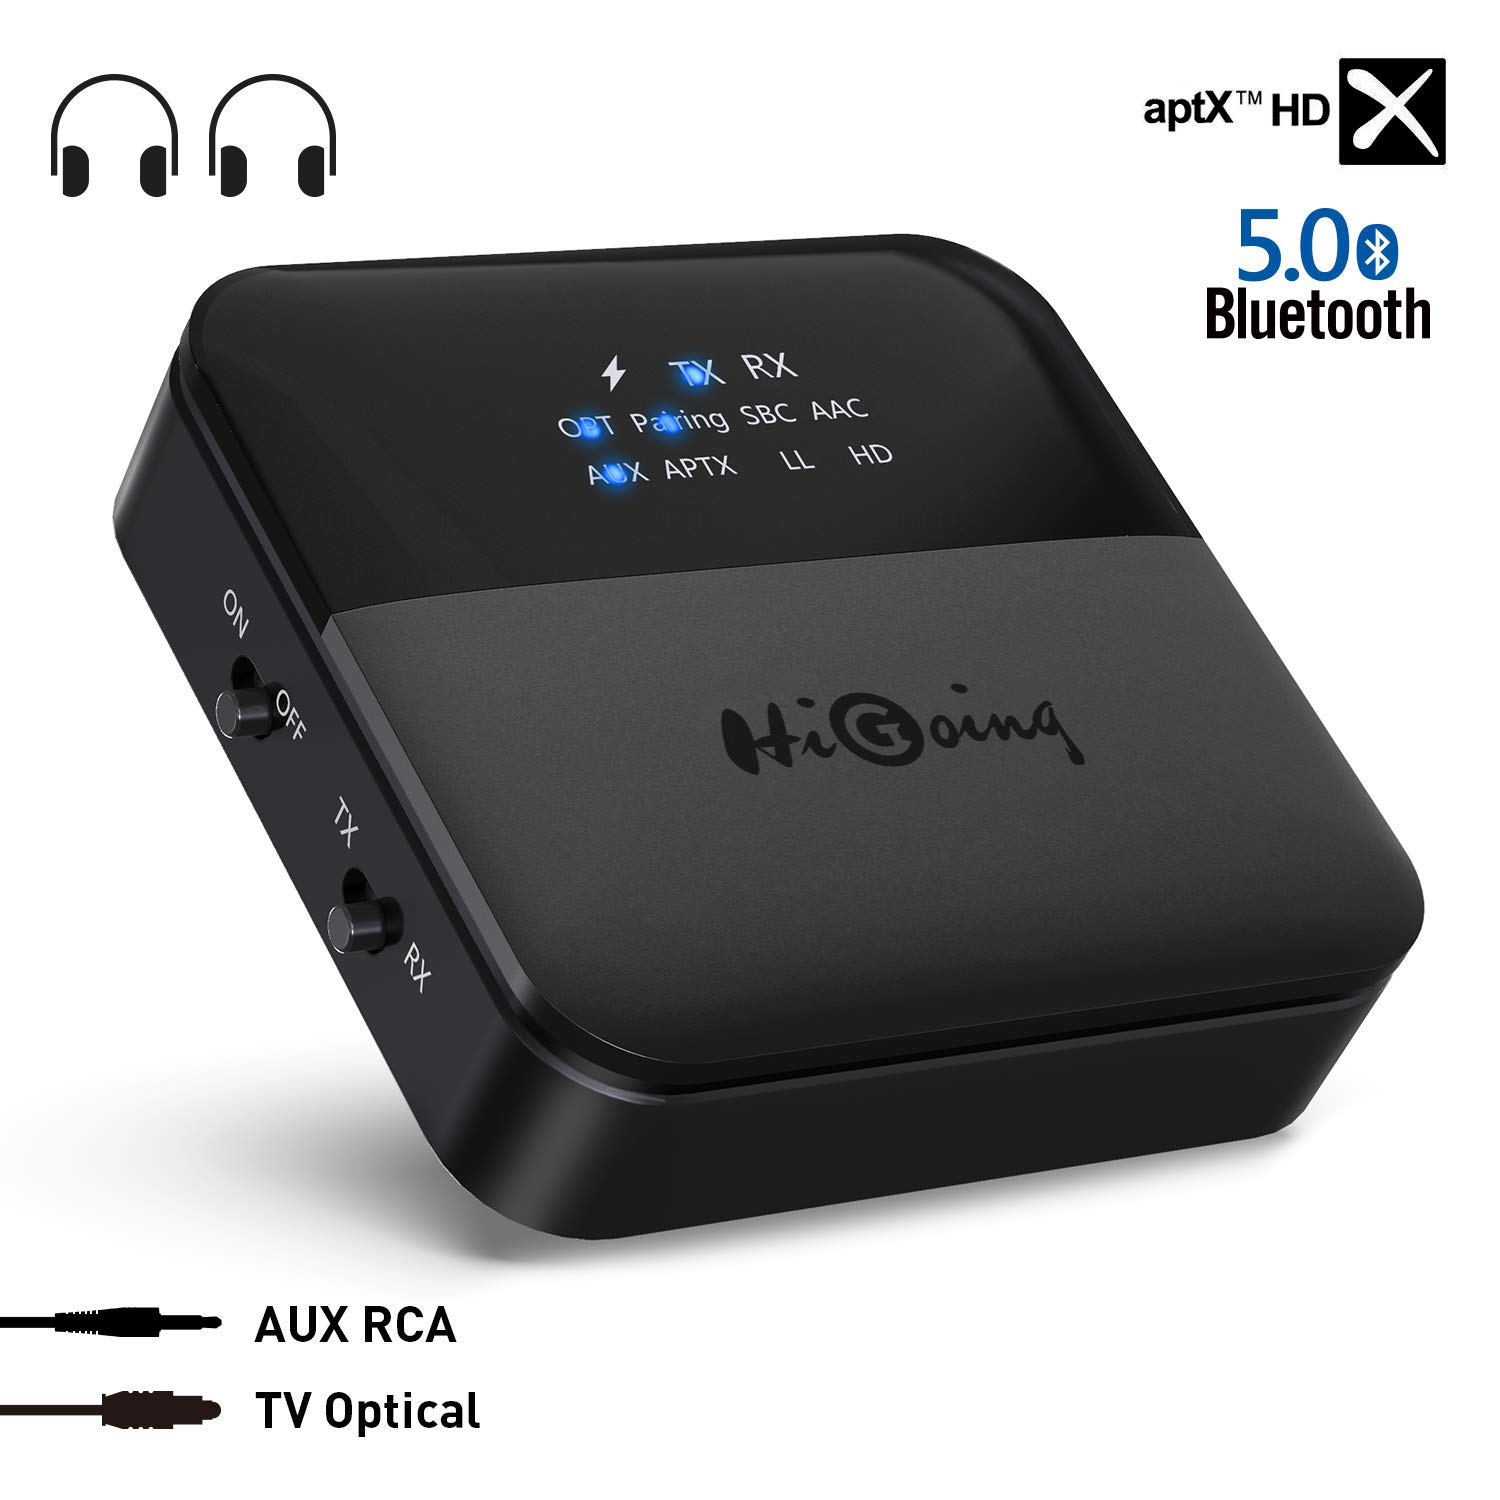 d9924596195 HiGoing Bluetooth 5.0 Transmitter Receiver with Indicator Display, Digital  Optical TOSLINK and 3.5mm Wireless Audio Adapter, aptX HD, aptX LL, Low ...